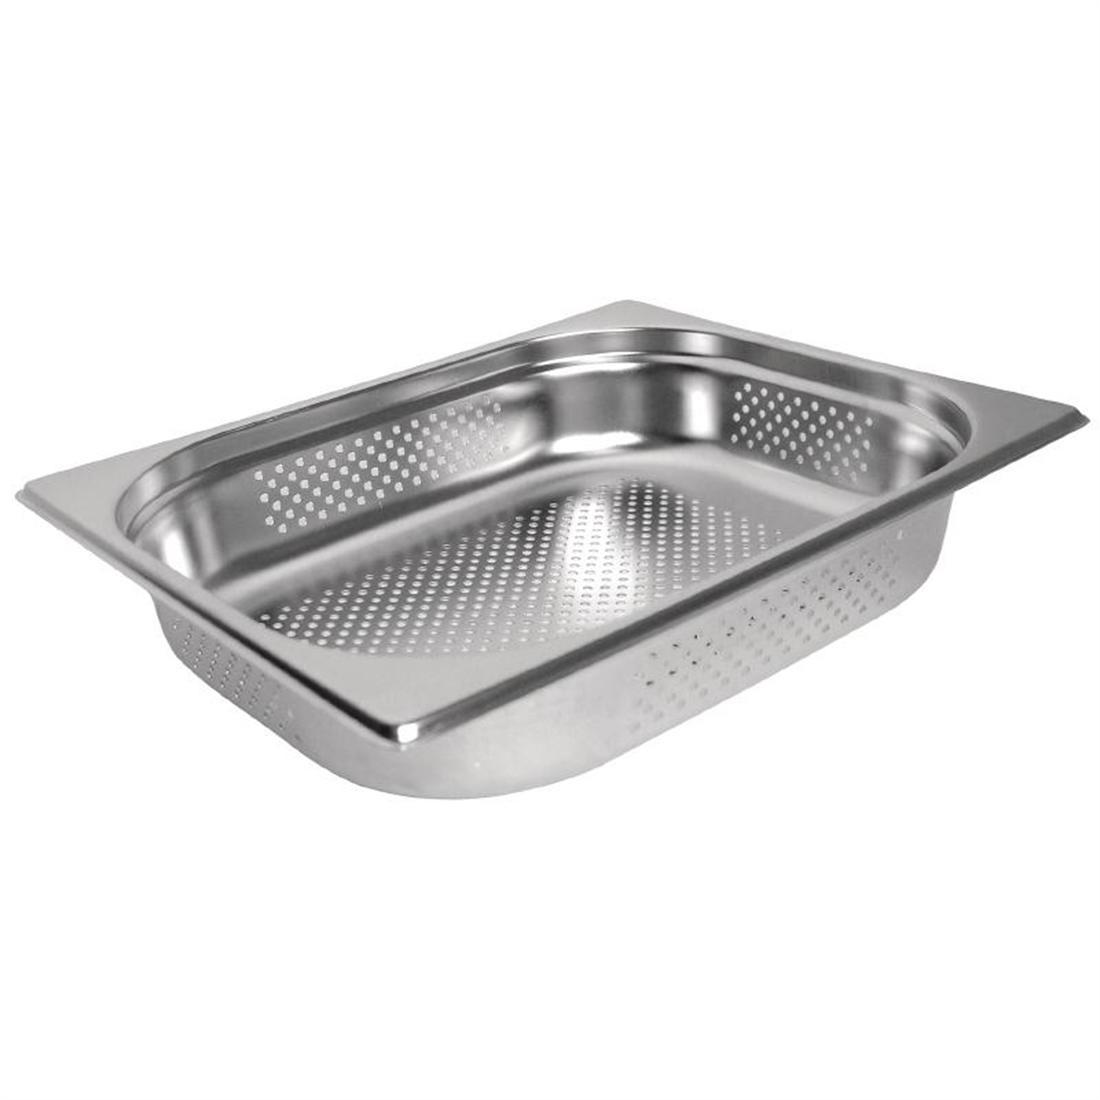 Vogue Stainless Steel Perforated 1/2 Gastronorm Pan 100mm - K845